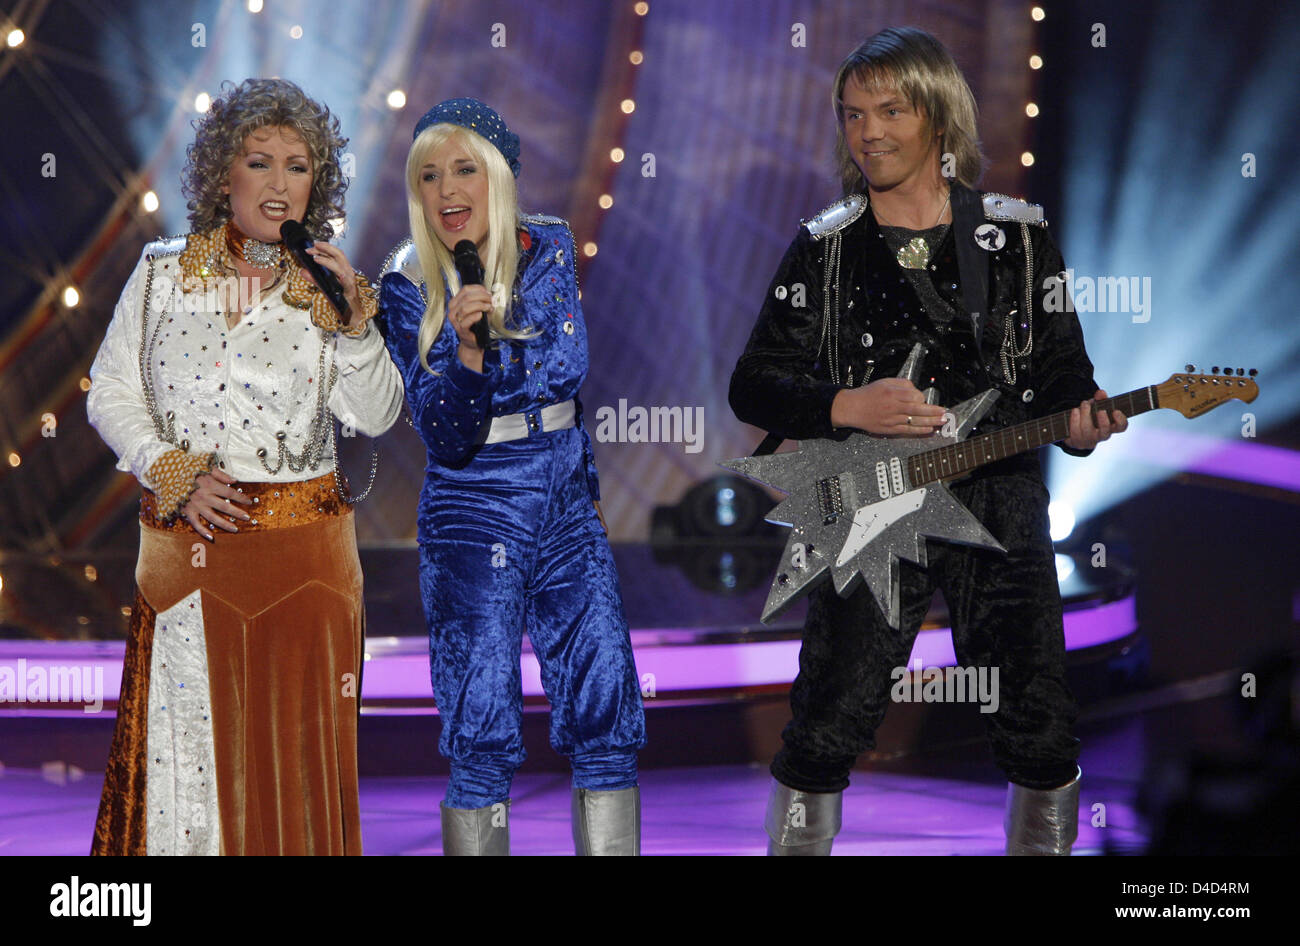 Dressed as the music group Abba Ute Freudenberg (L-R) performs with Stefanie Hertel and her husband Stefan Mross - Stock Image